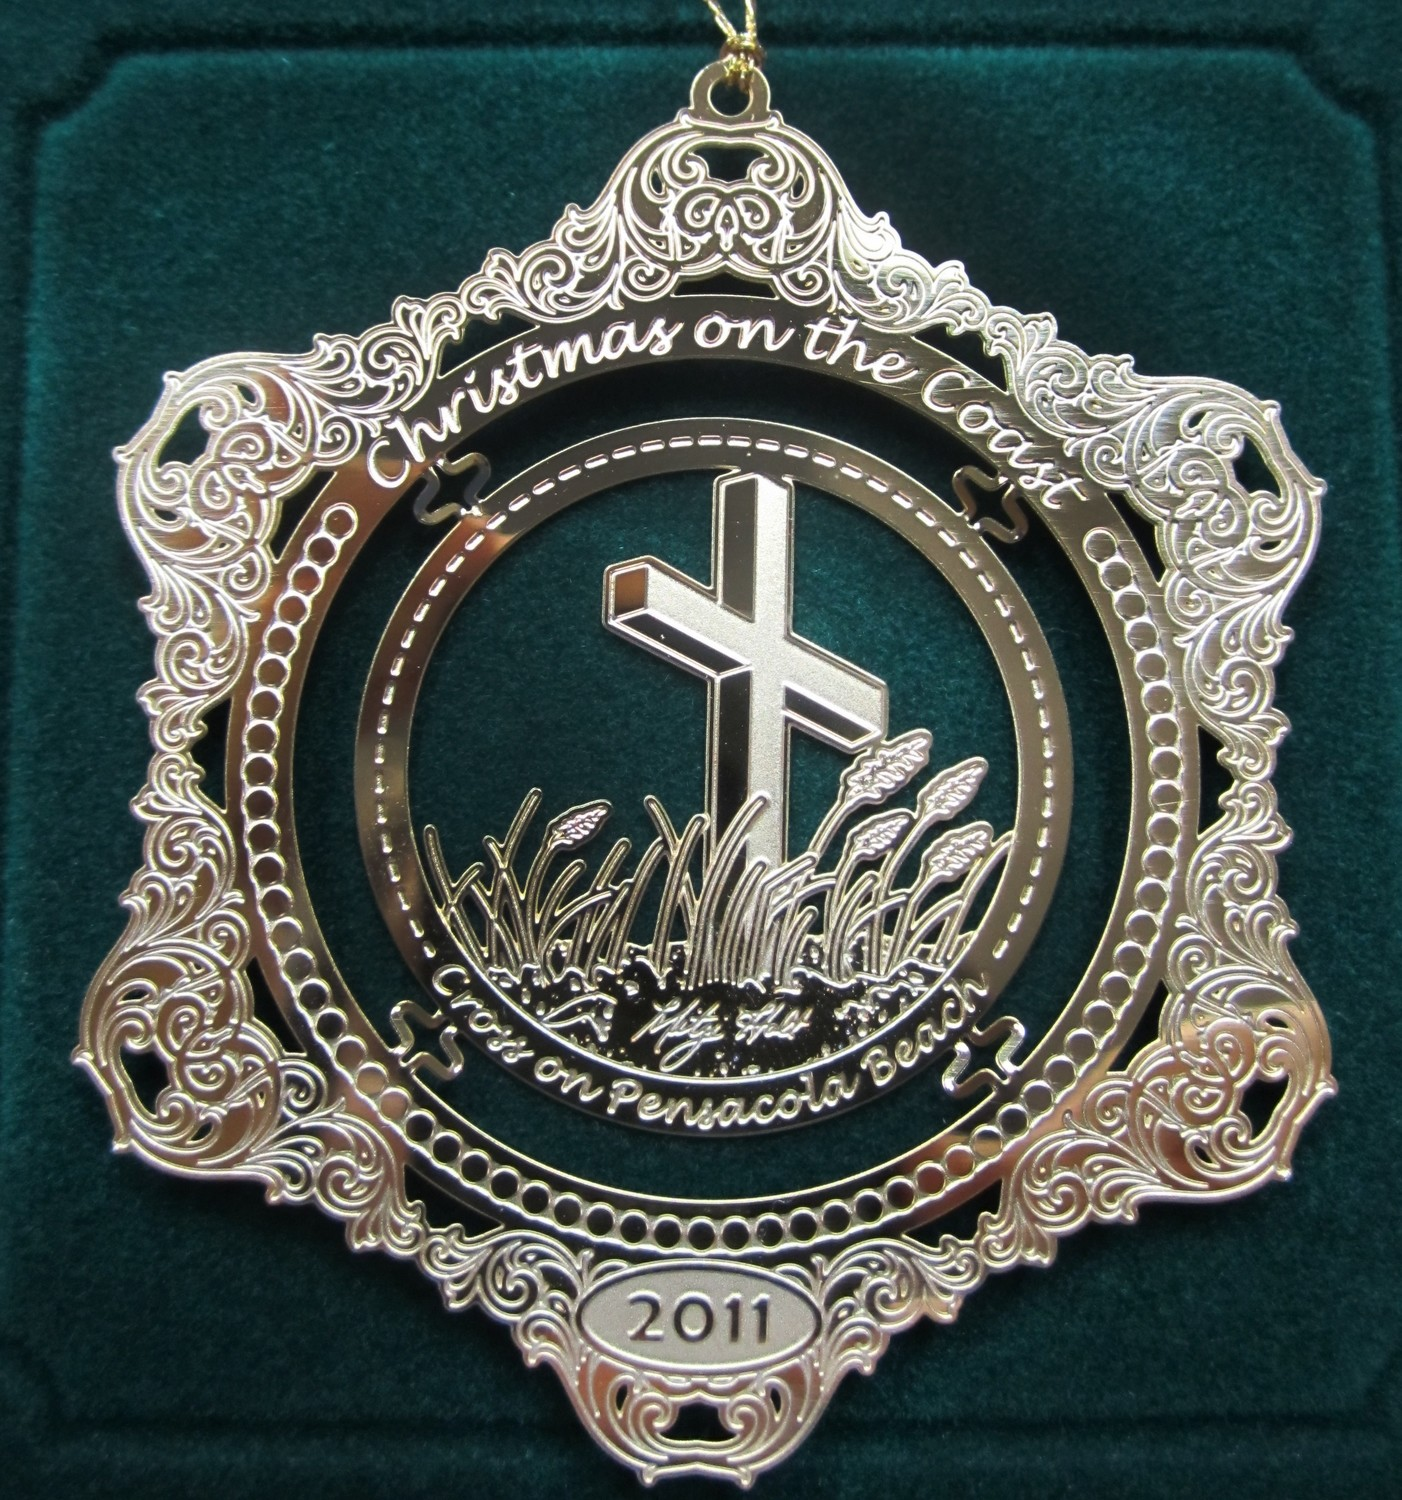 2011 - CROSS ON PENSACOLA BEACH